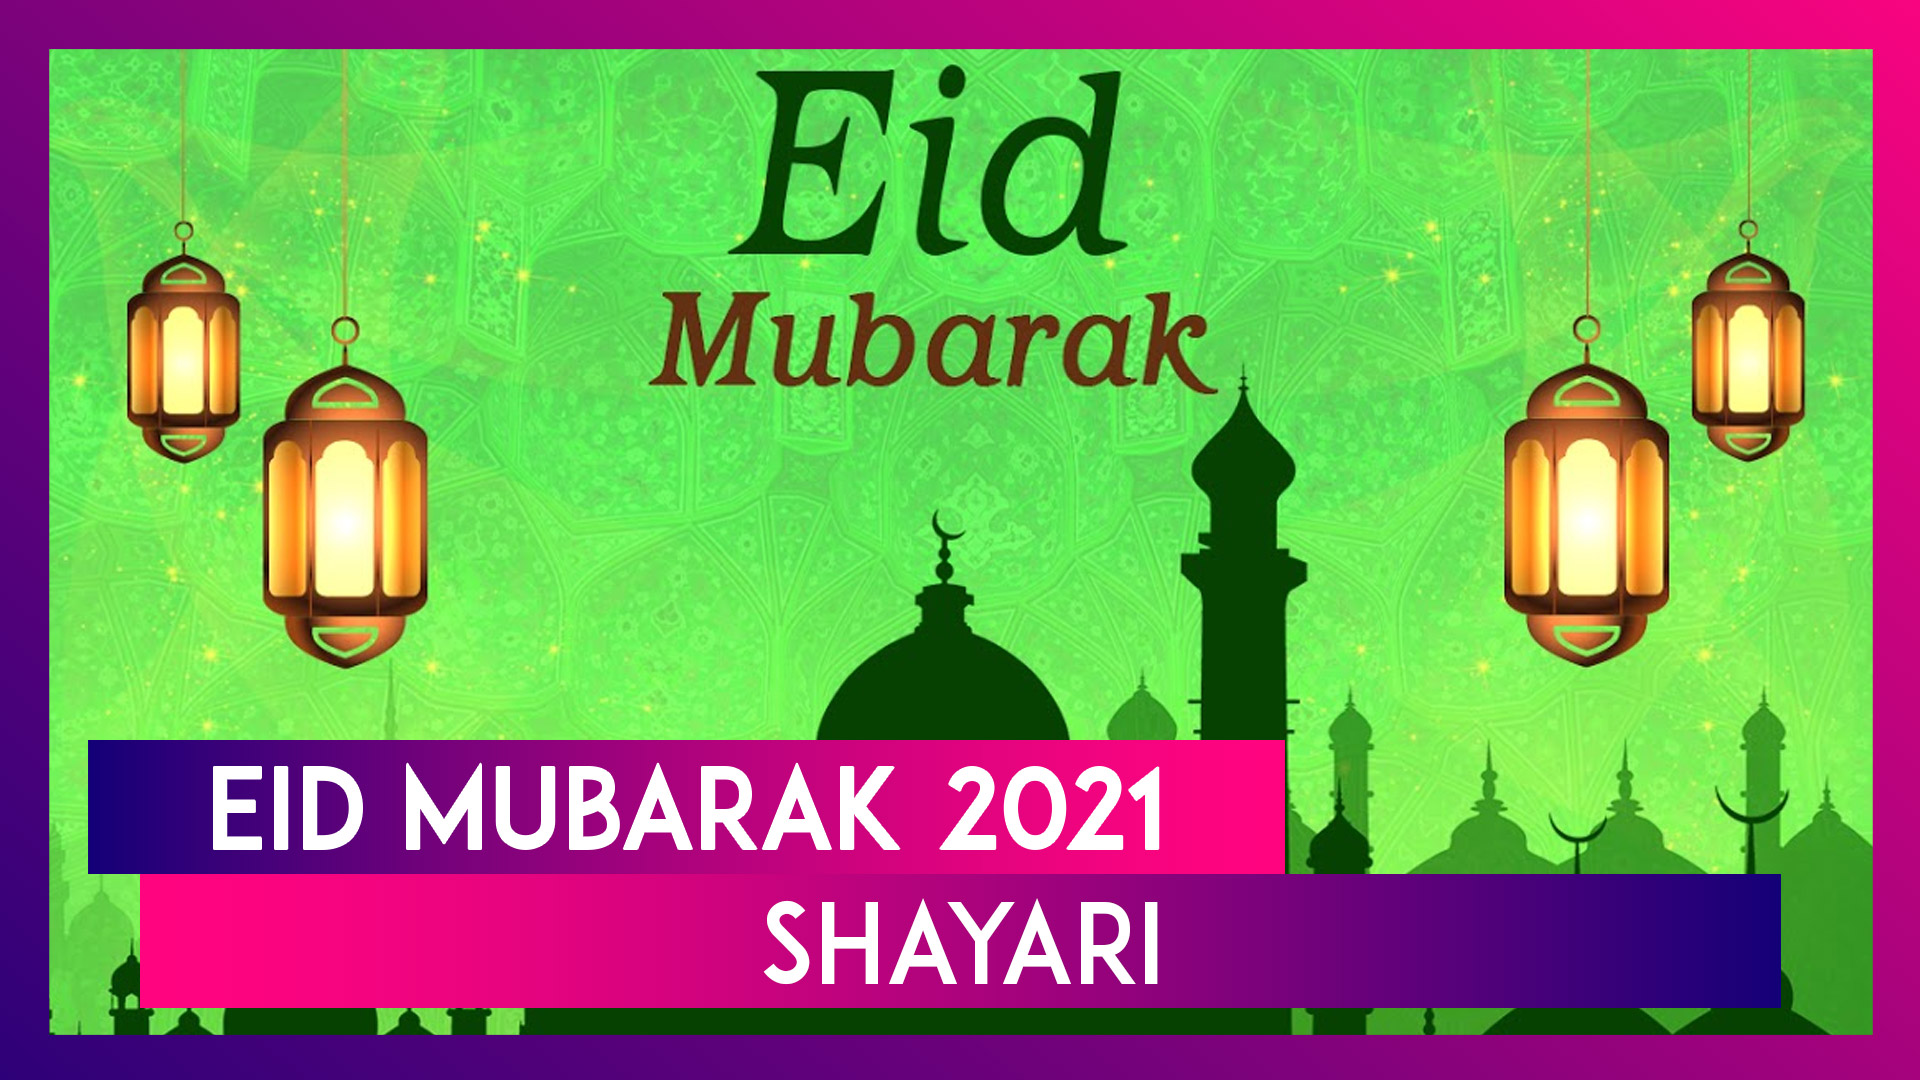 Eid Mubarak 2021 Shayari: Send Eid ul-Fitr Wishes in Hindi, Messages & Greetings to Family & Friends